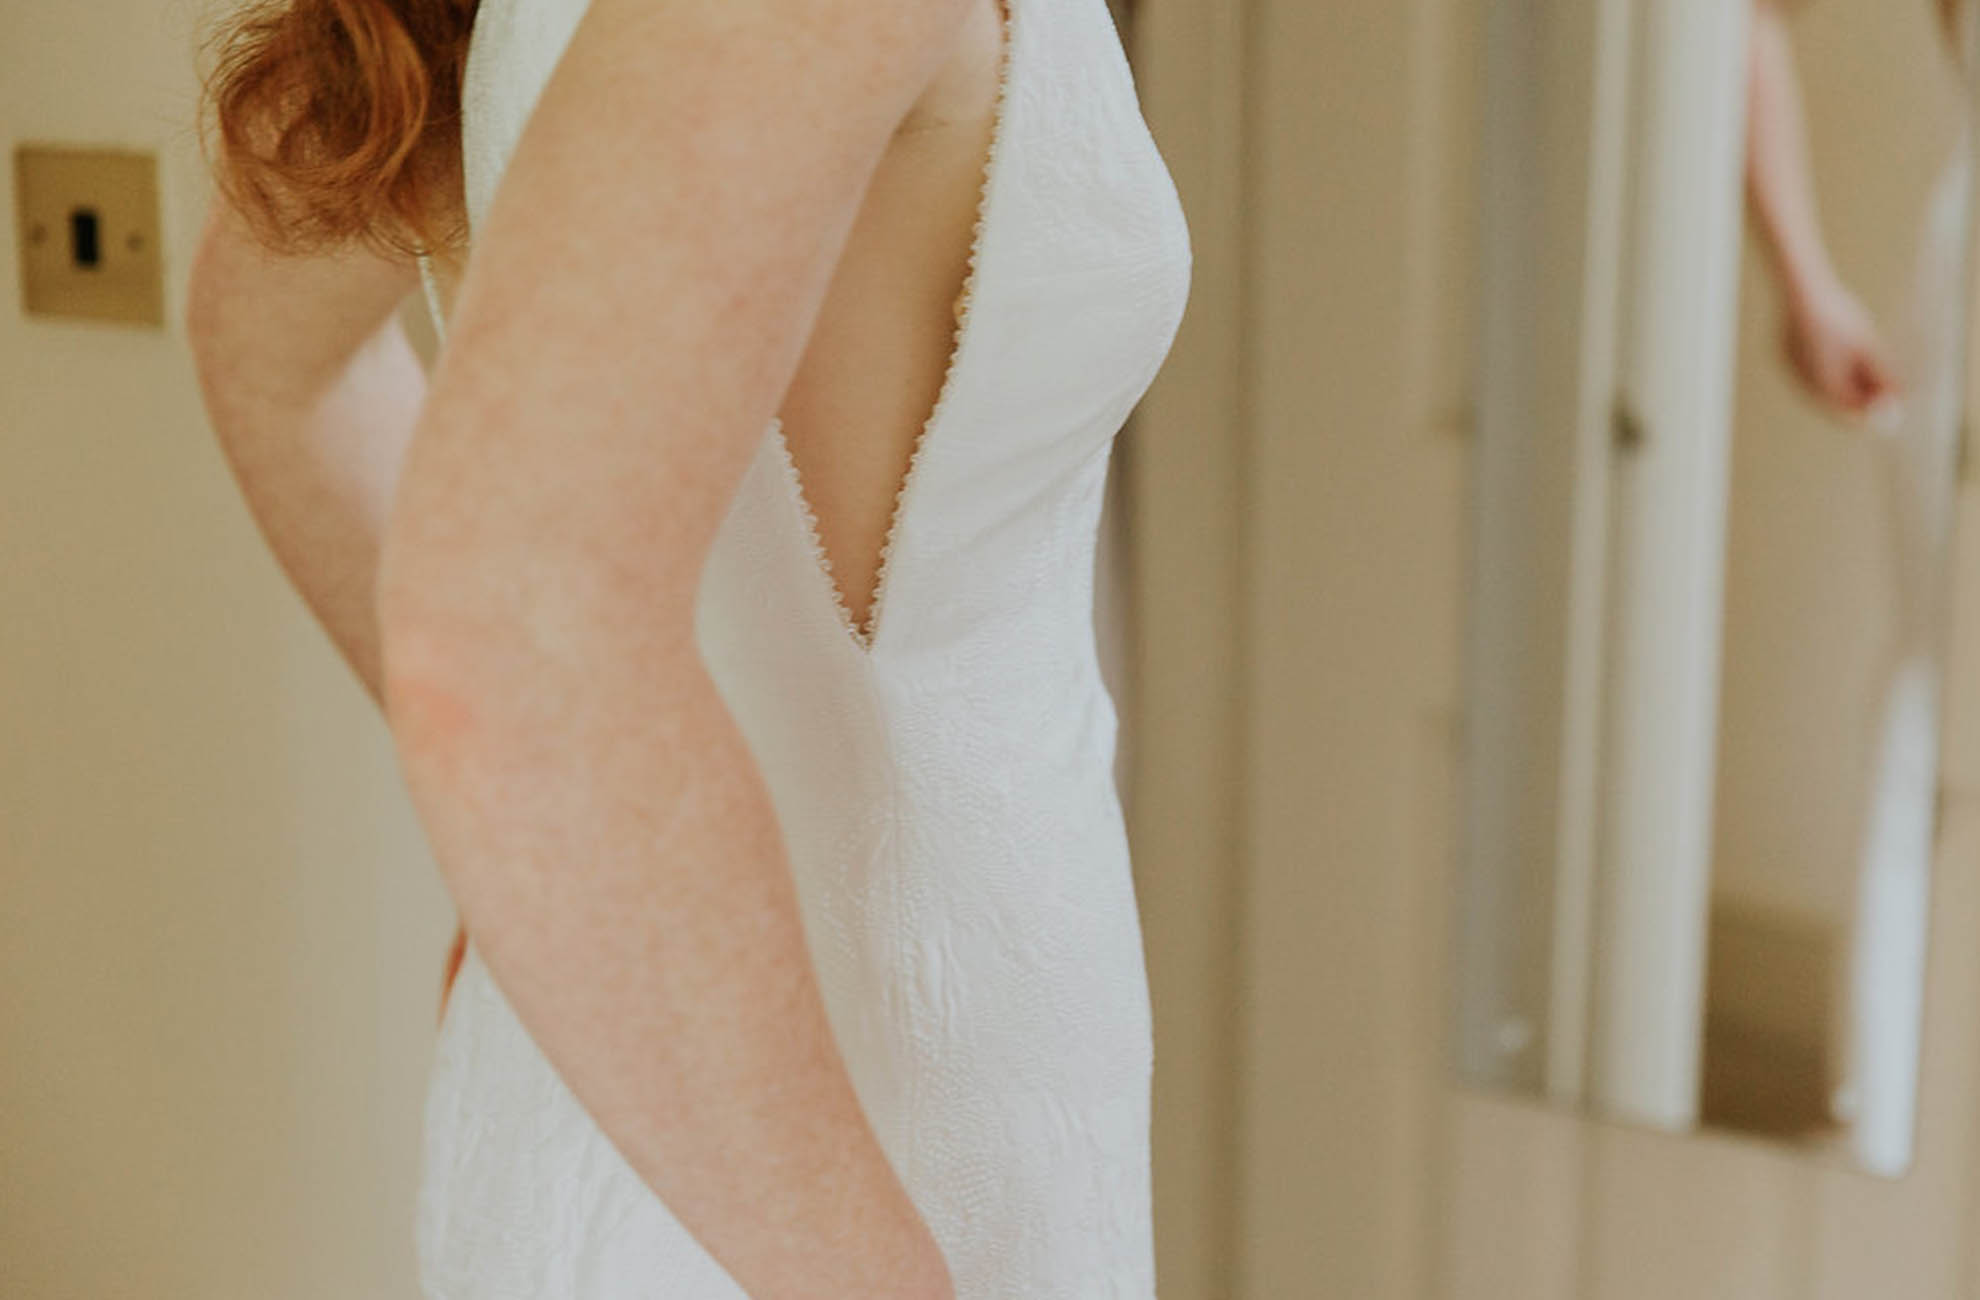 The bride wore a form fitting dress with cut out side details for her wedding at Combermere Abbey